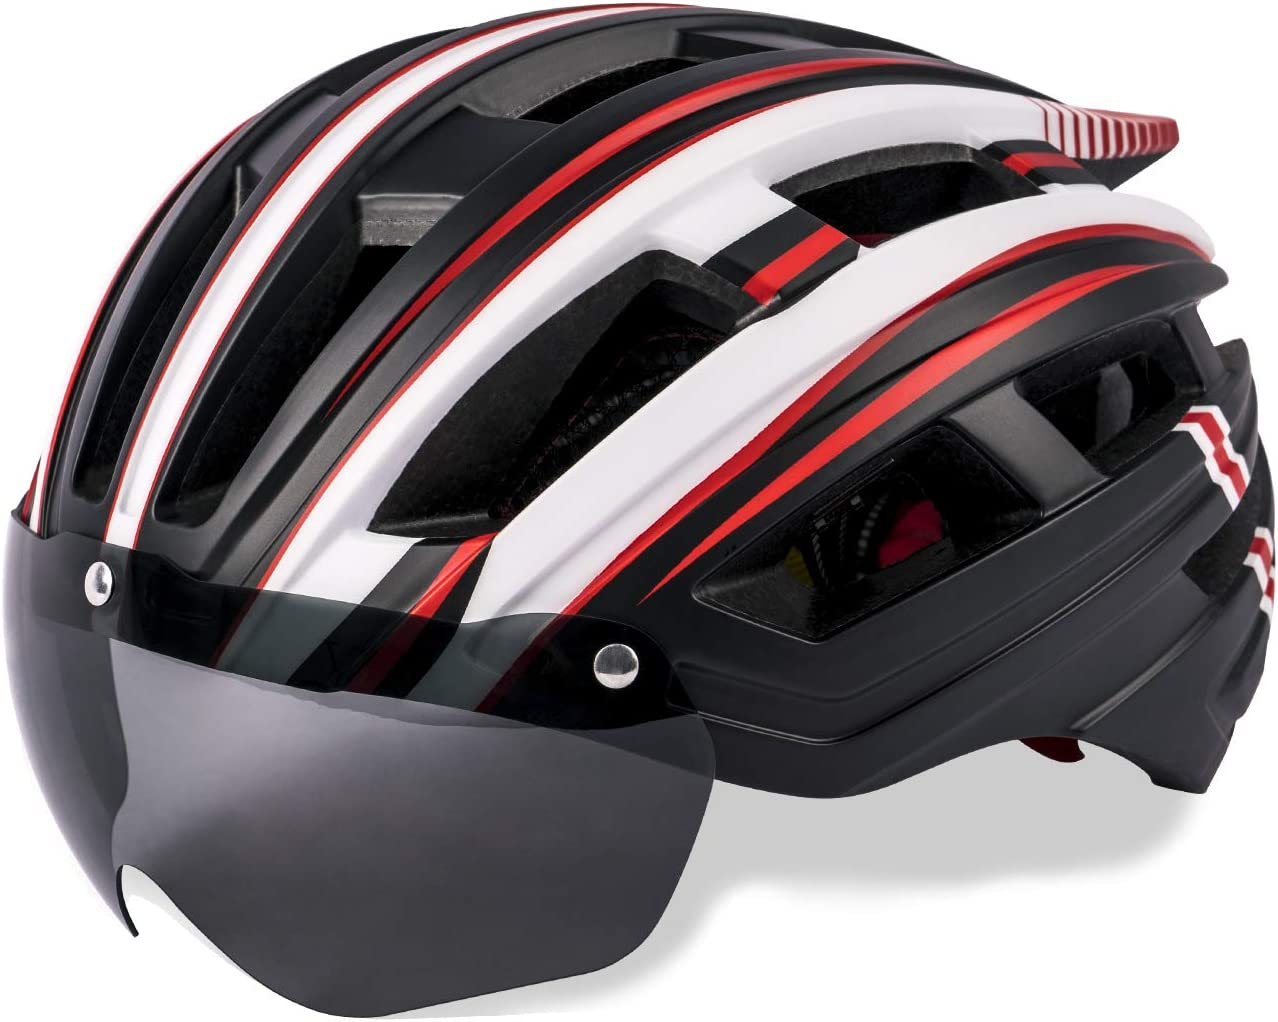 Bike Max 49% OFF Helmet for Men Women Bicycle with Magnetic Cycling Super beauty product restock quality top!